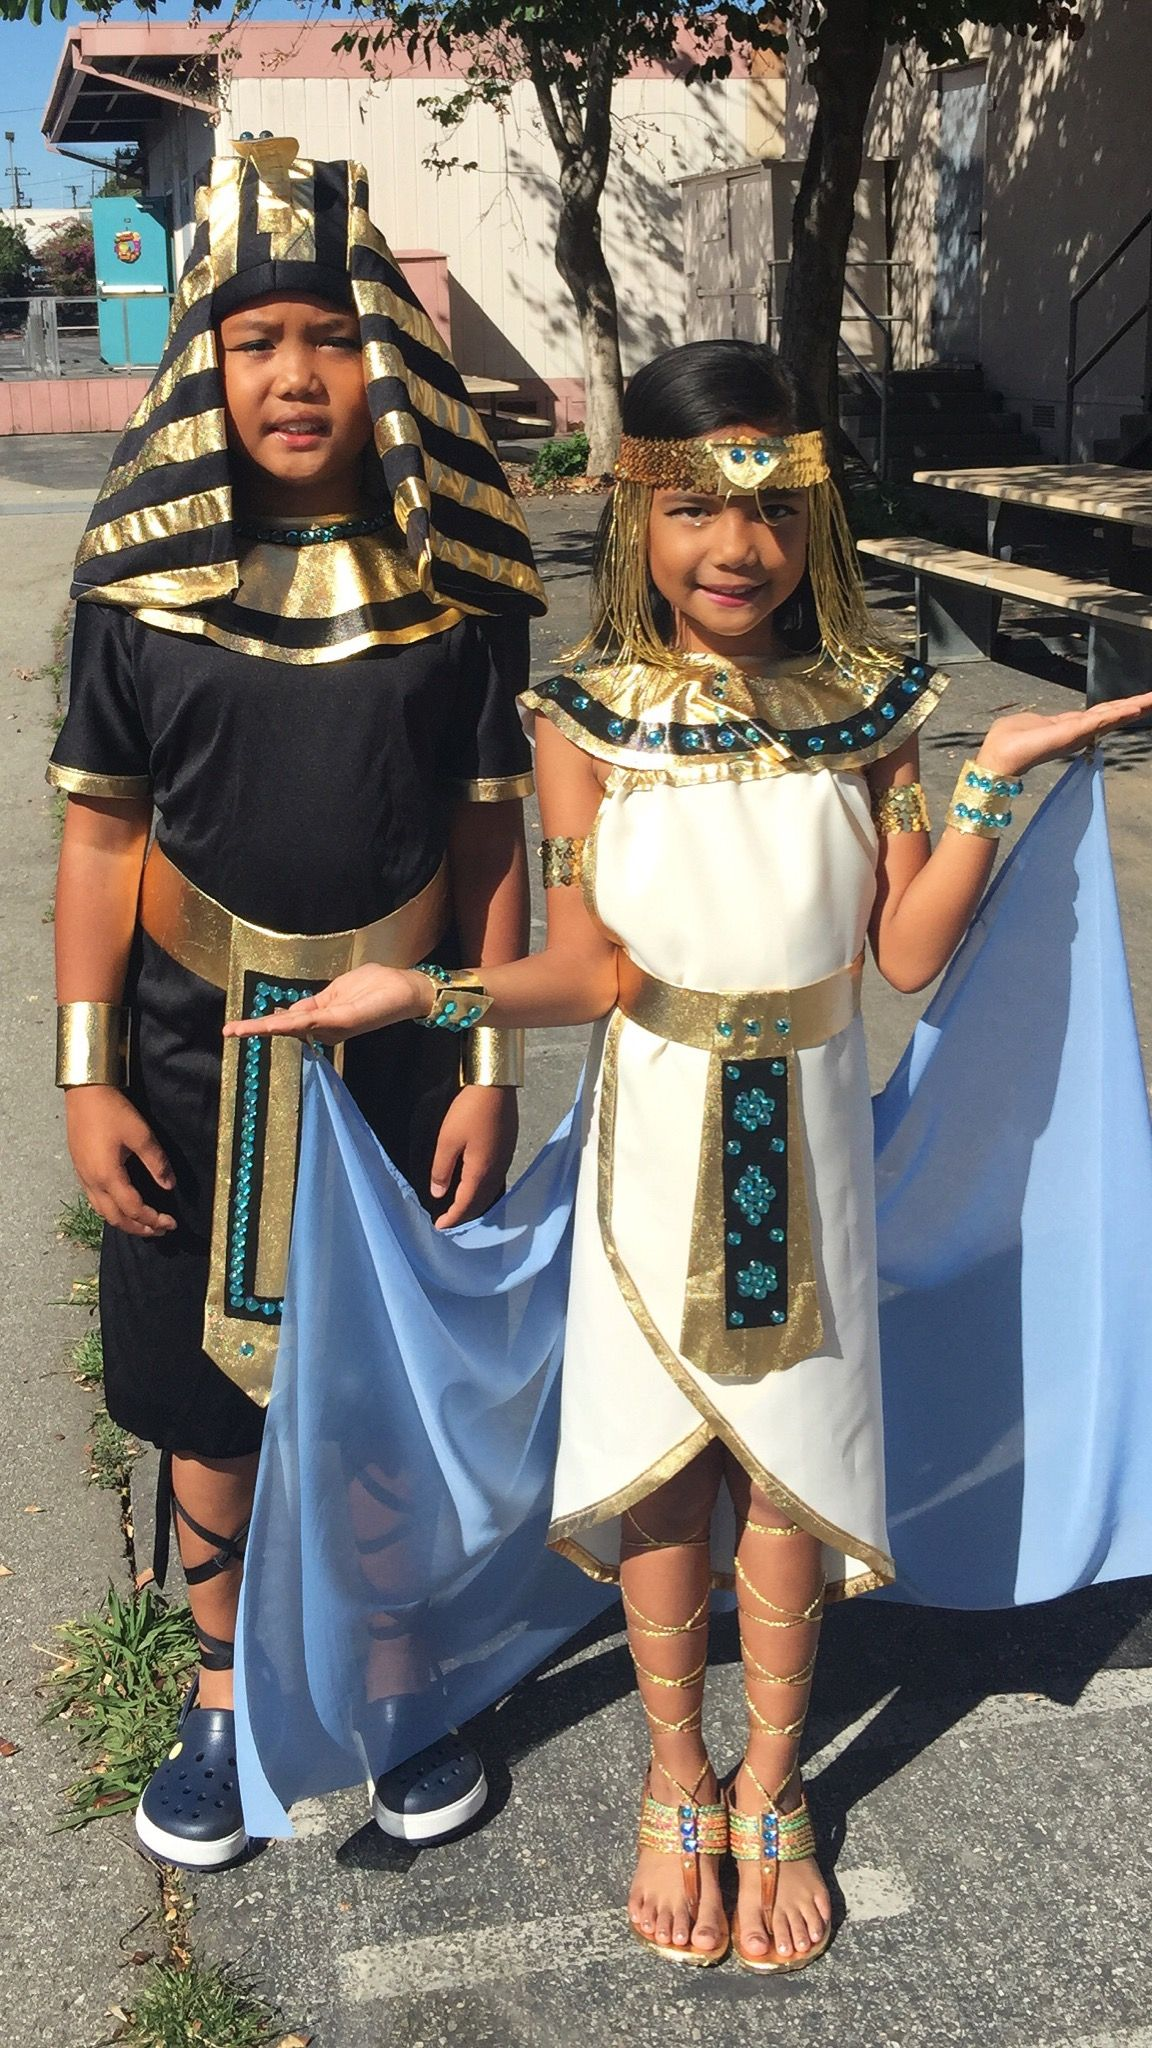 Egyptian princess costume. Handmade from household items: pillow ...